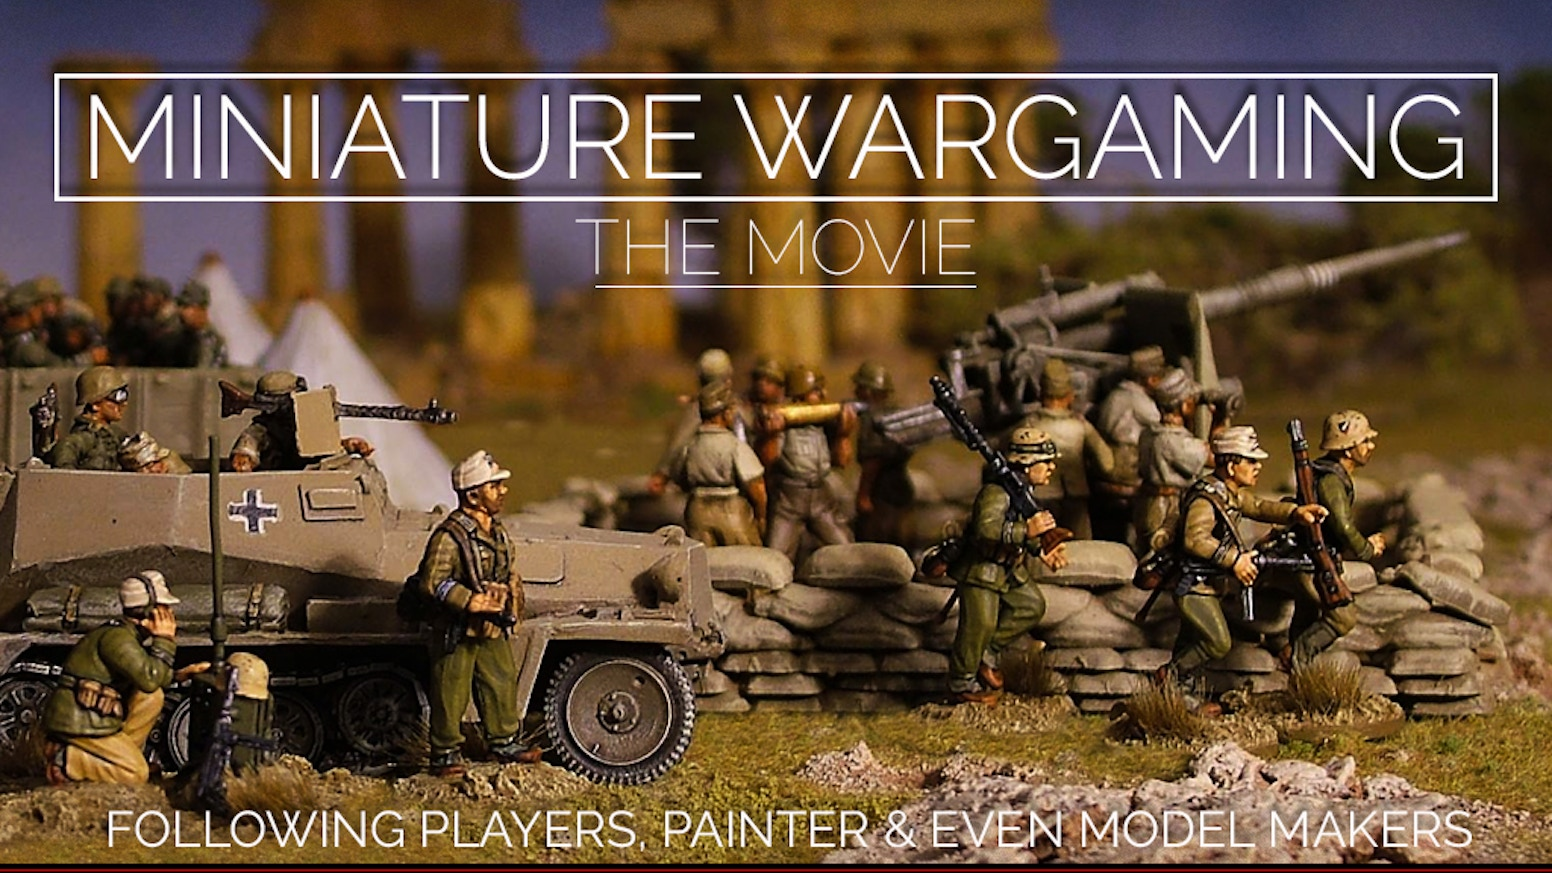 Following Players, Painters & Even Model Makers. Dive into the amazing world of Miniature Wargaming. Limited edition miniature created.